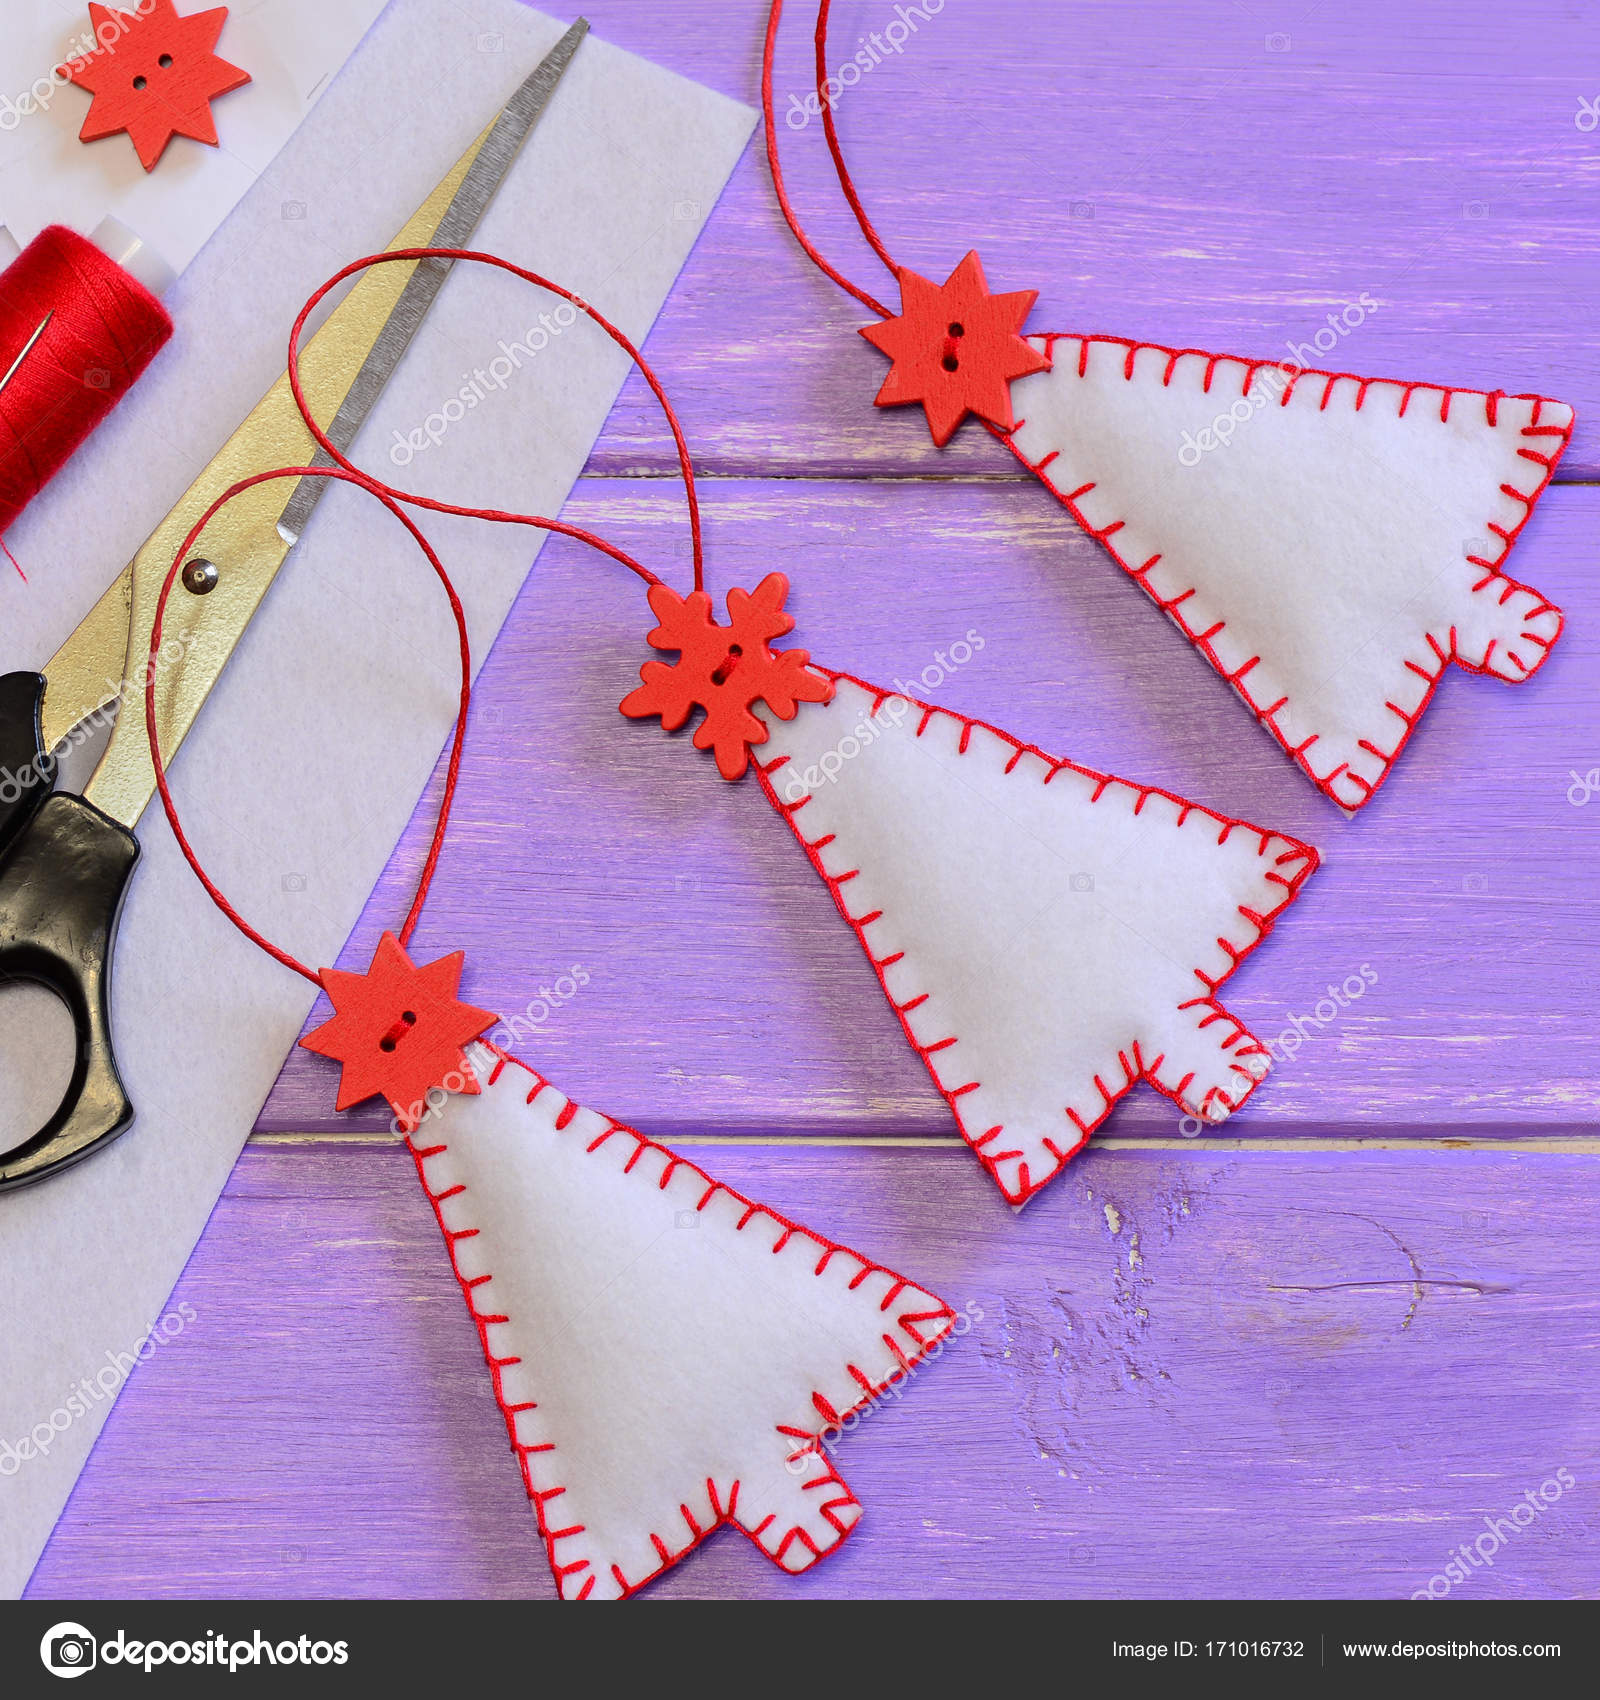 Christmas Tree Decorations Craft Materials And Tools On A Purple